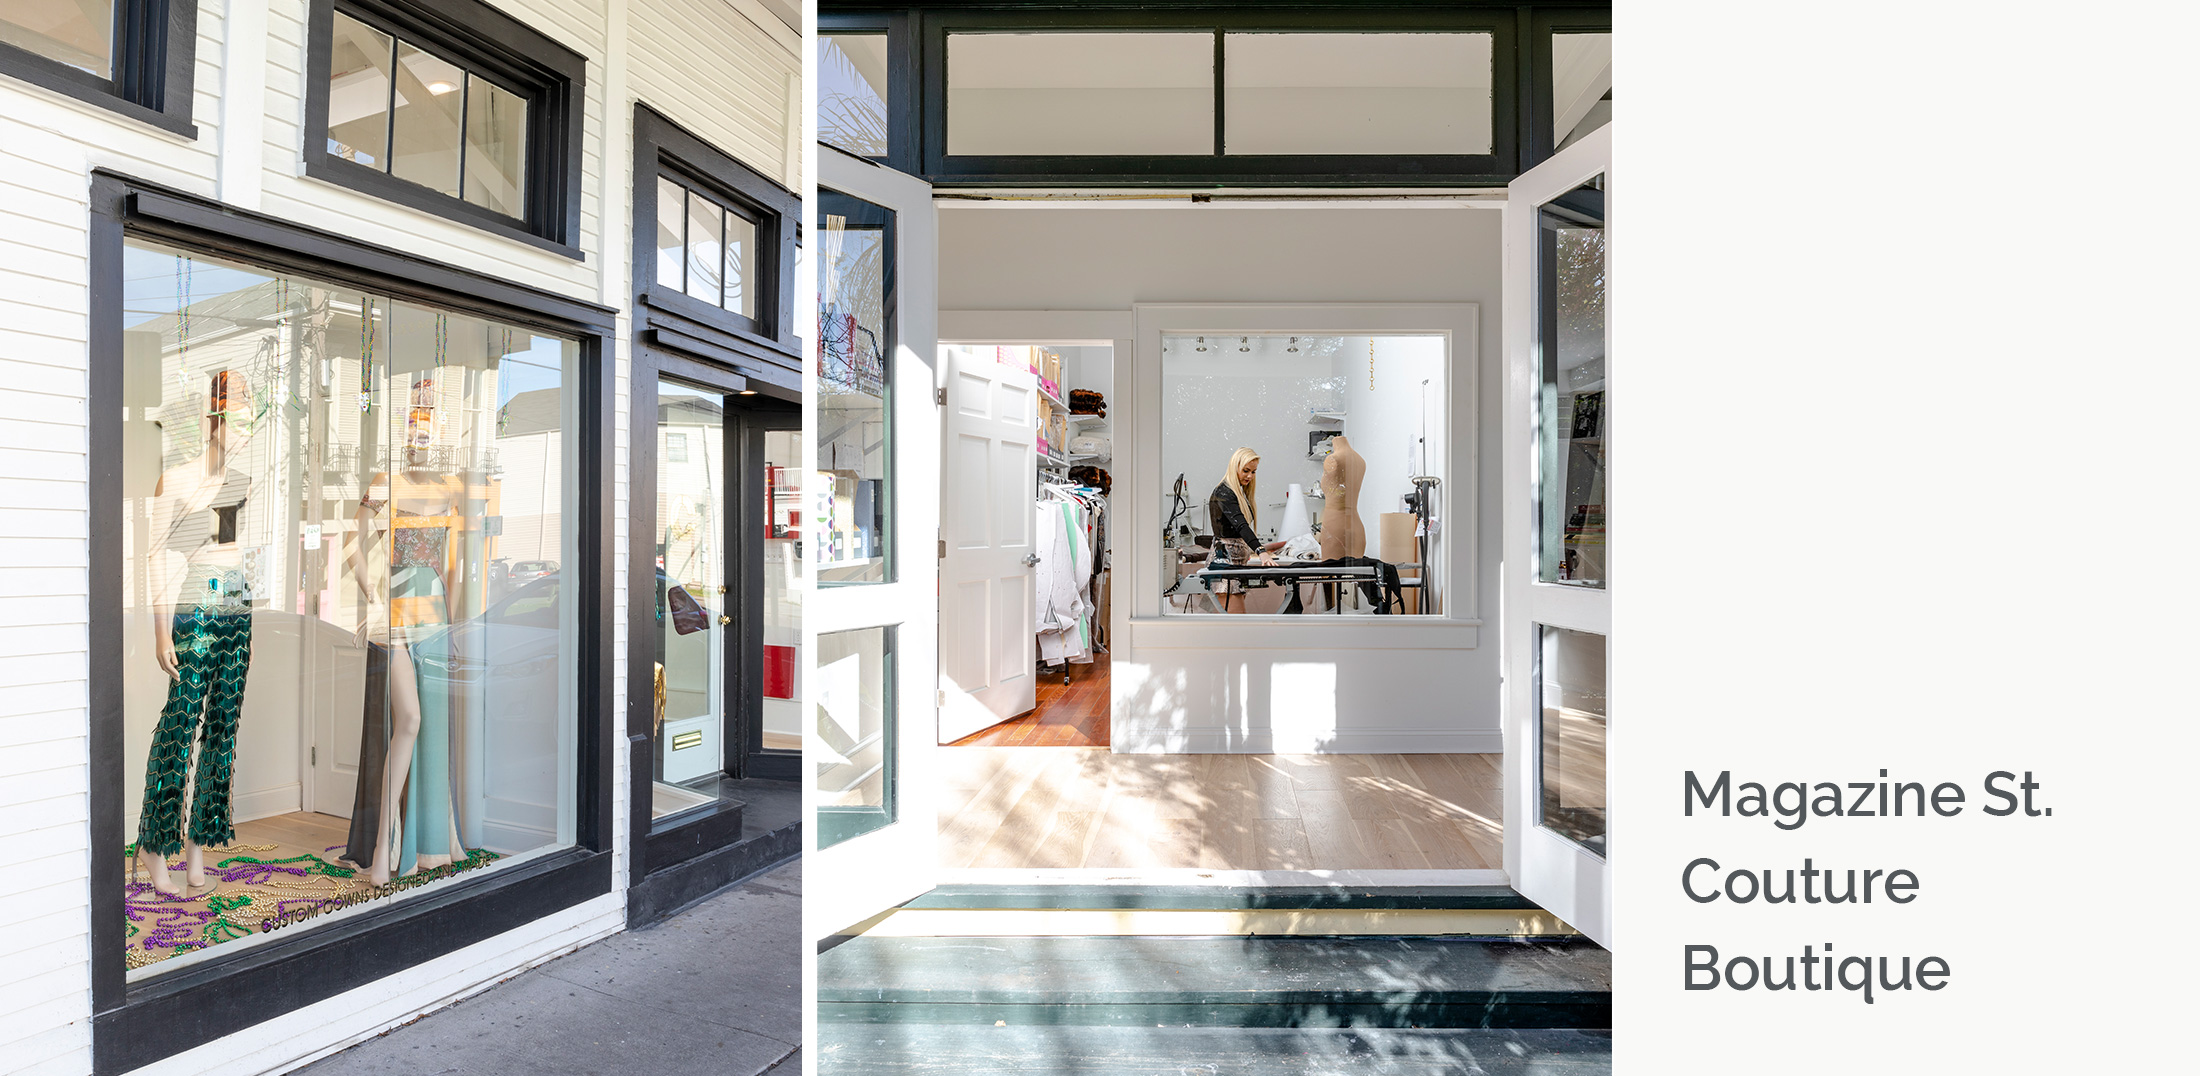 Magazine St Couture Boutique - Woolf Architecture